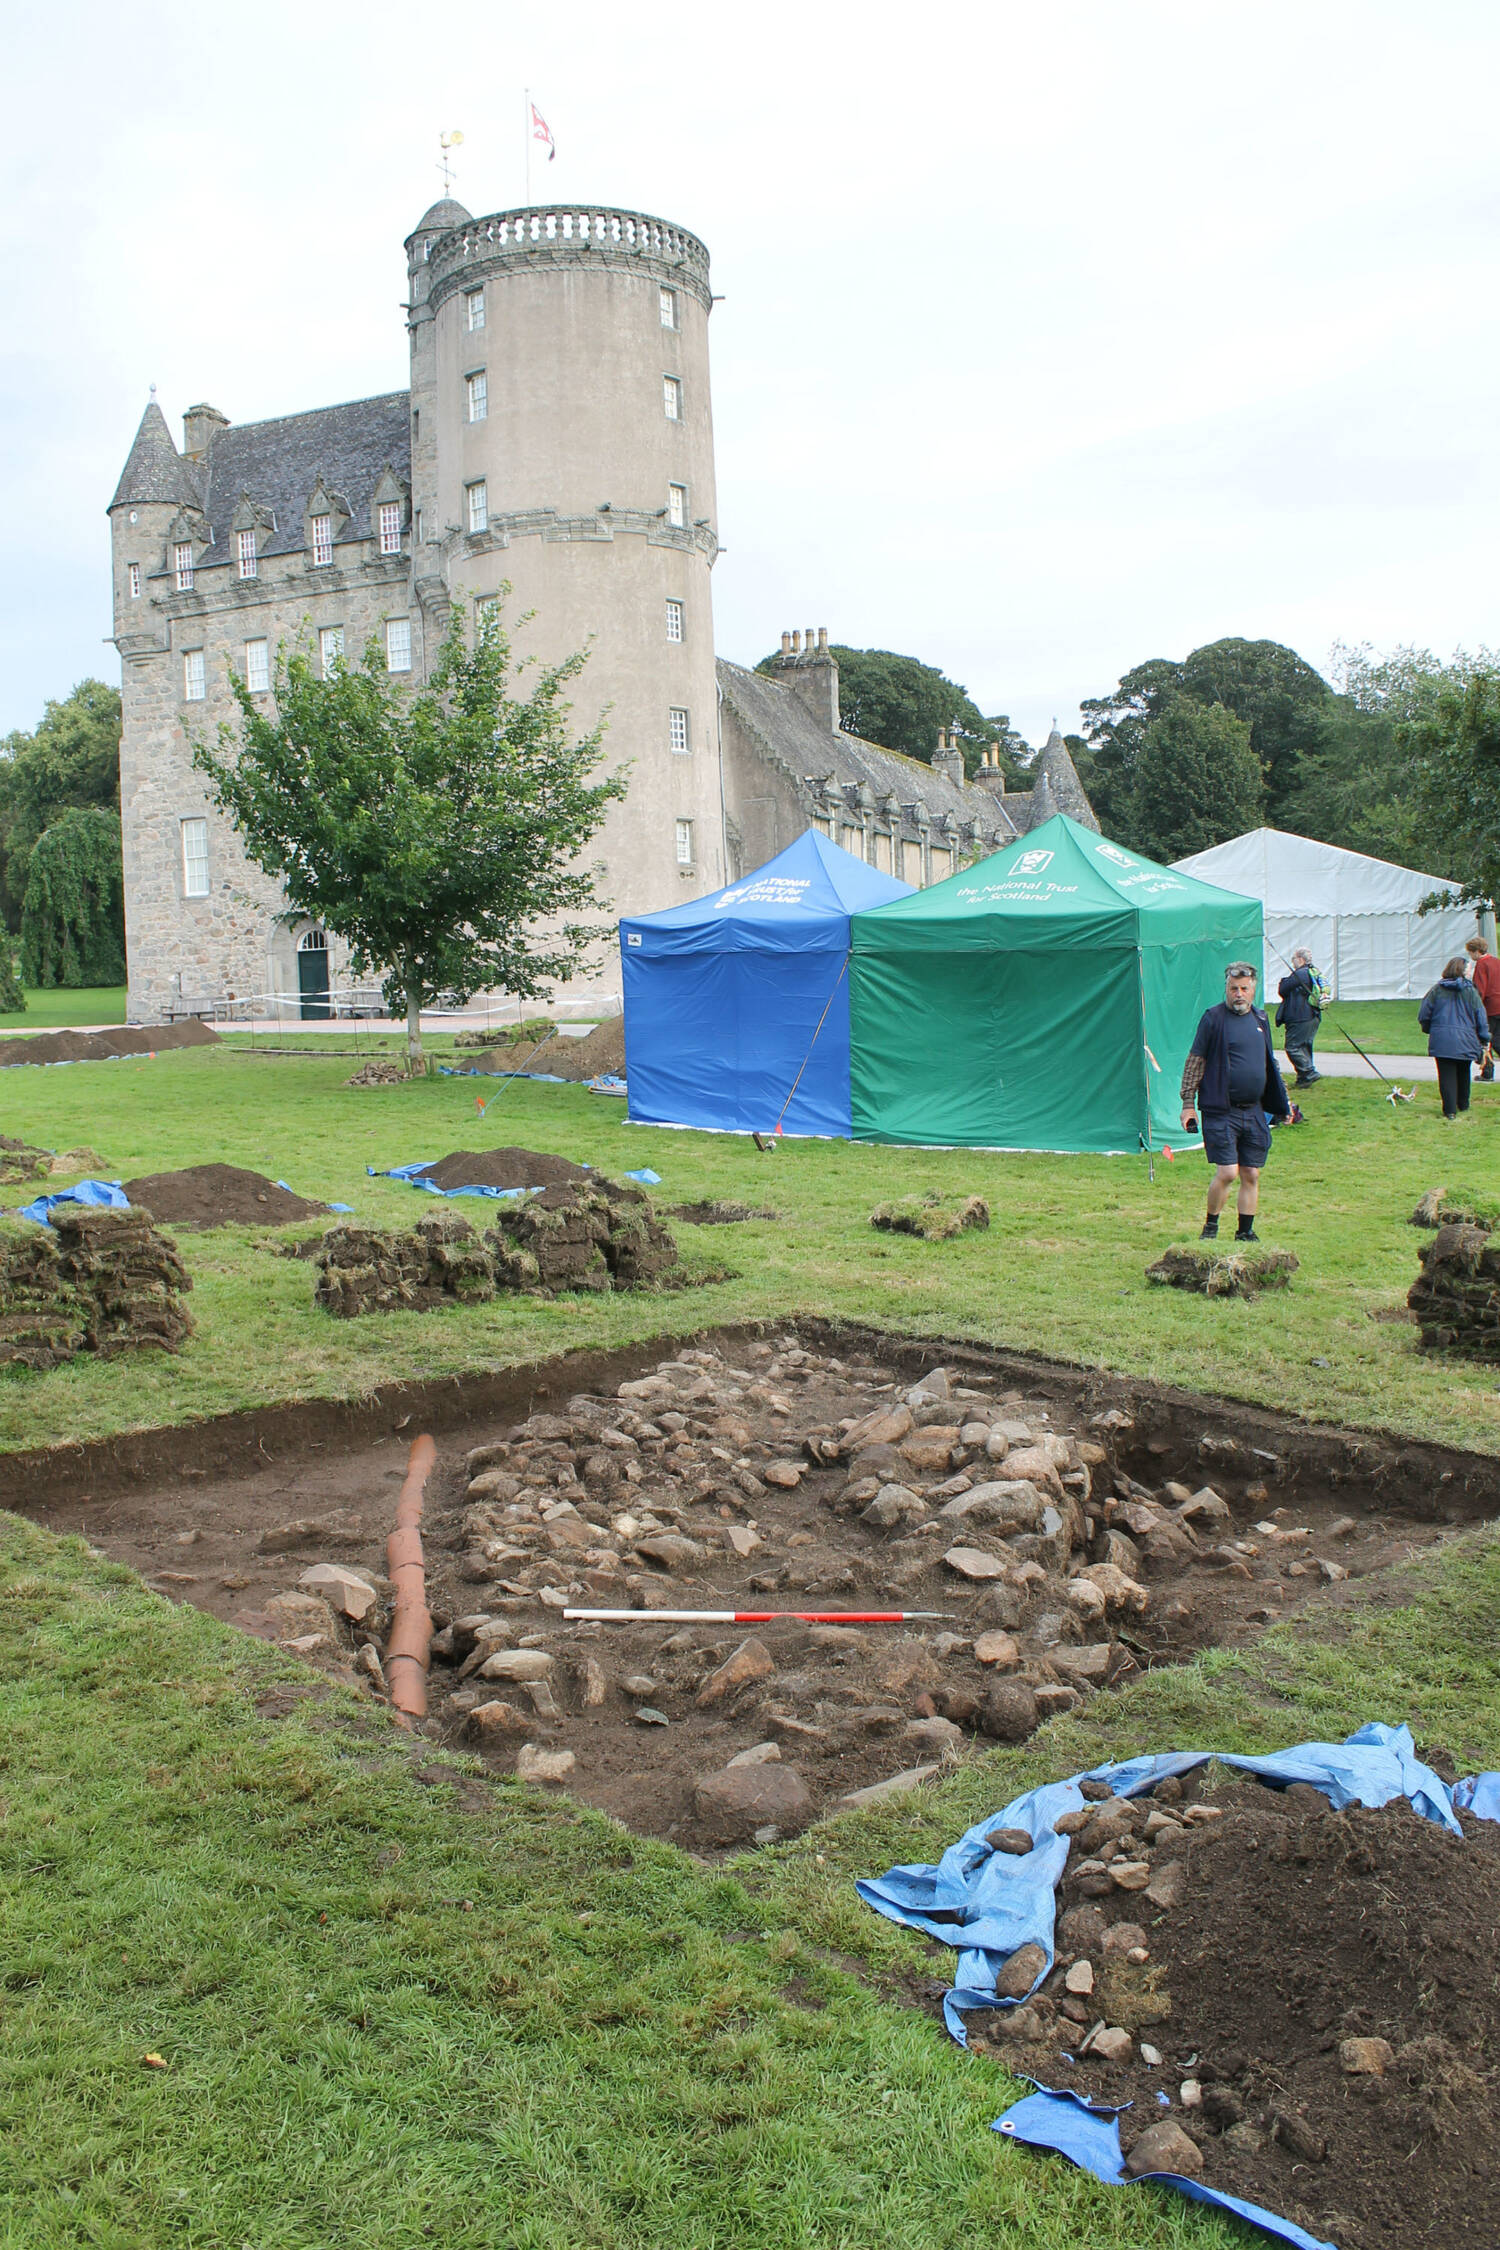 Archaeological excavation on the lawn in front of Castle Fraser